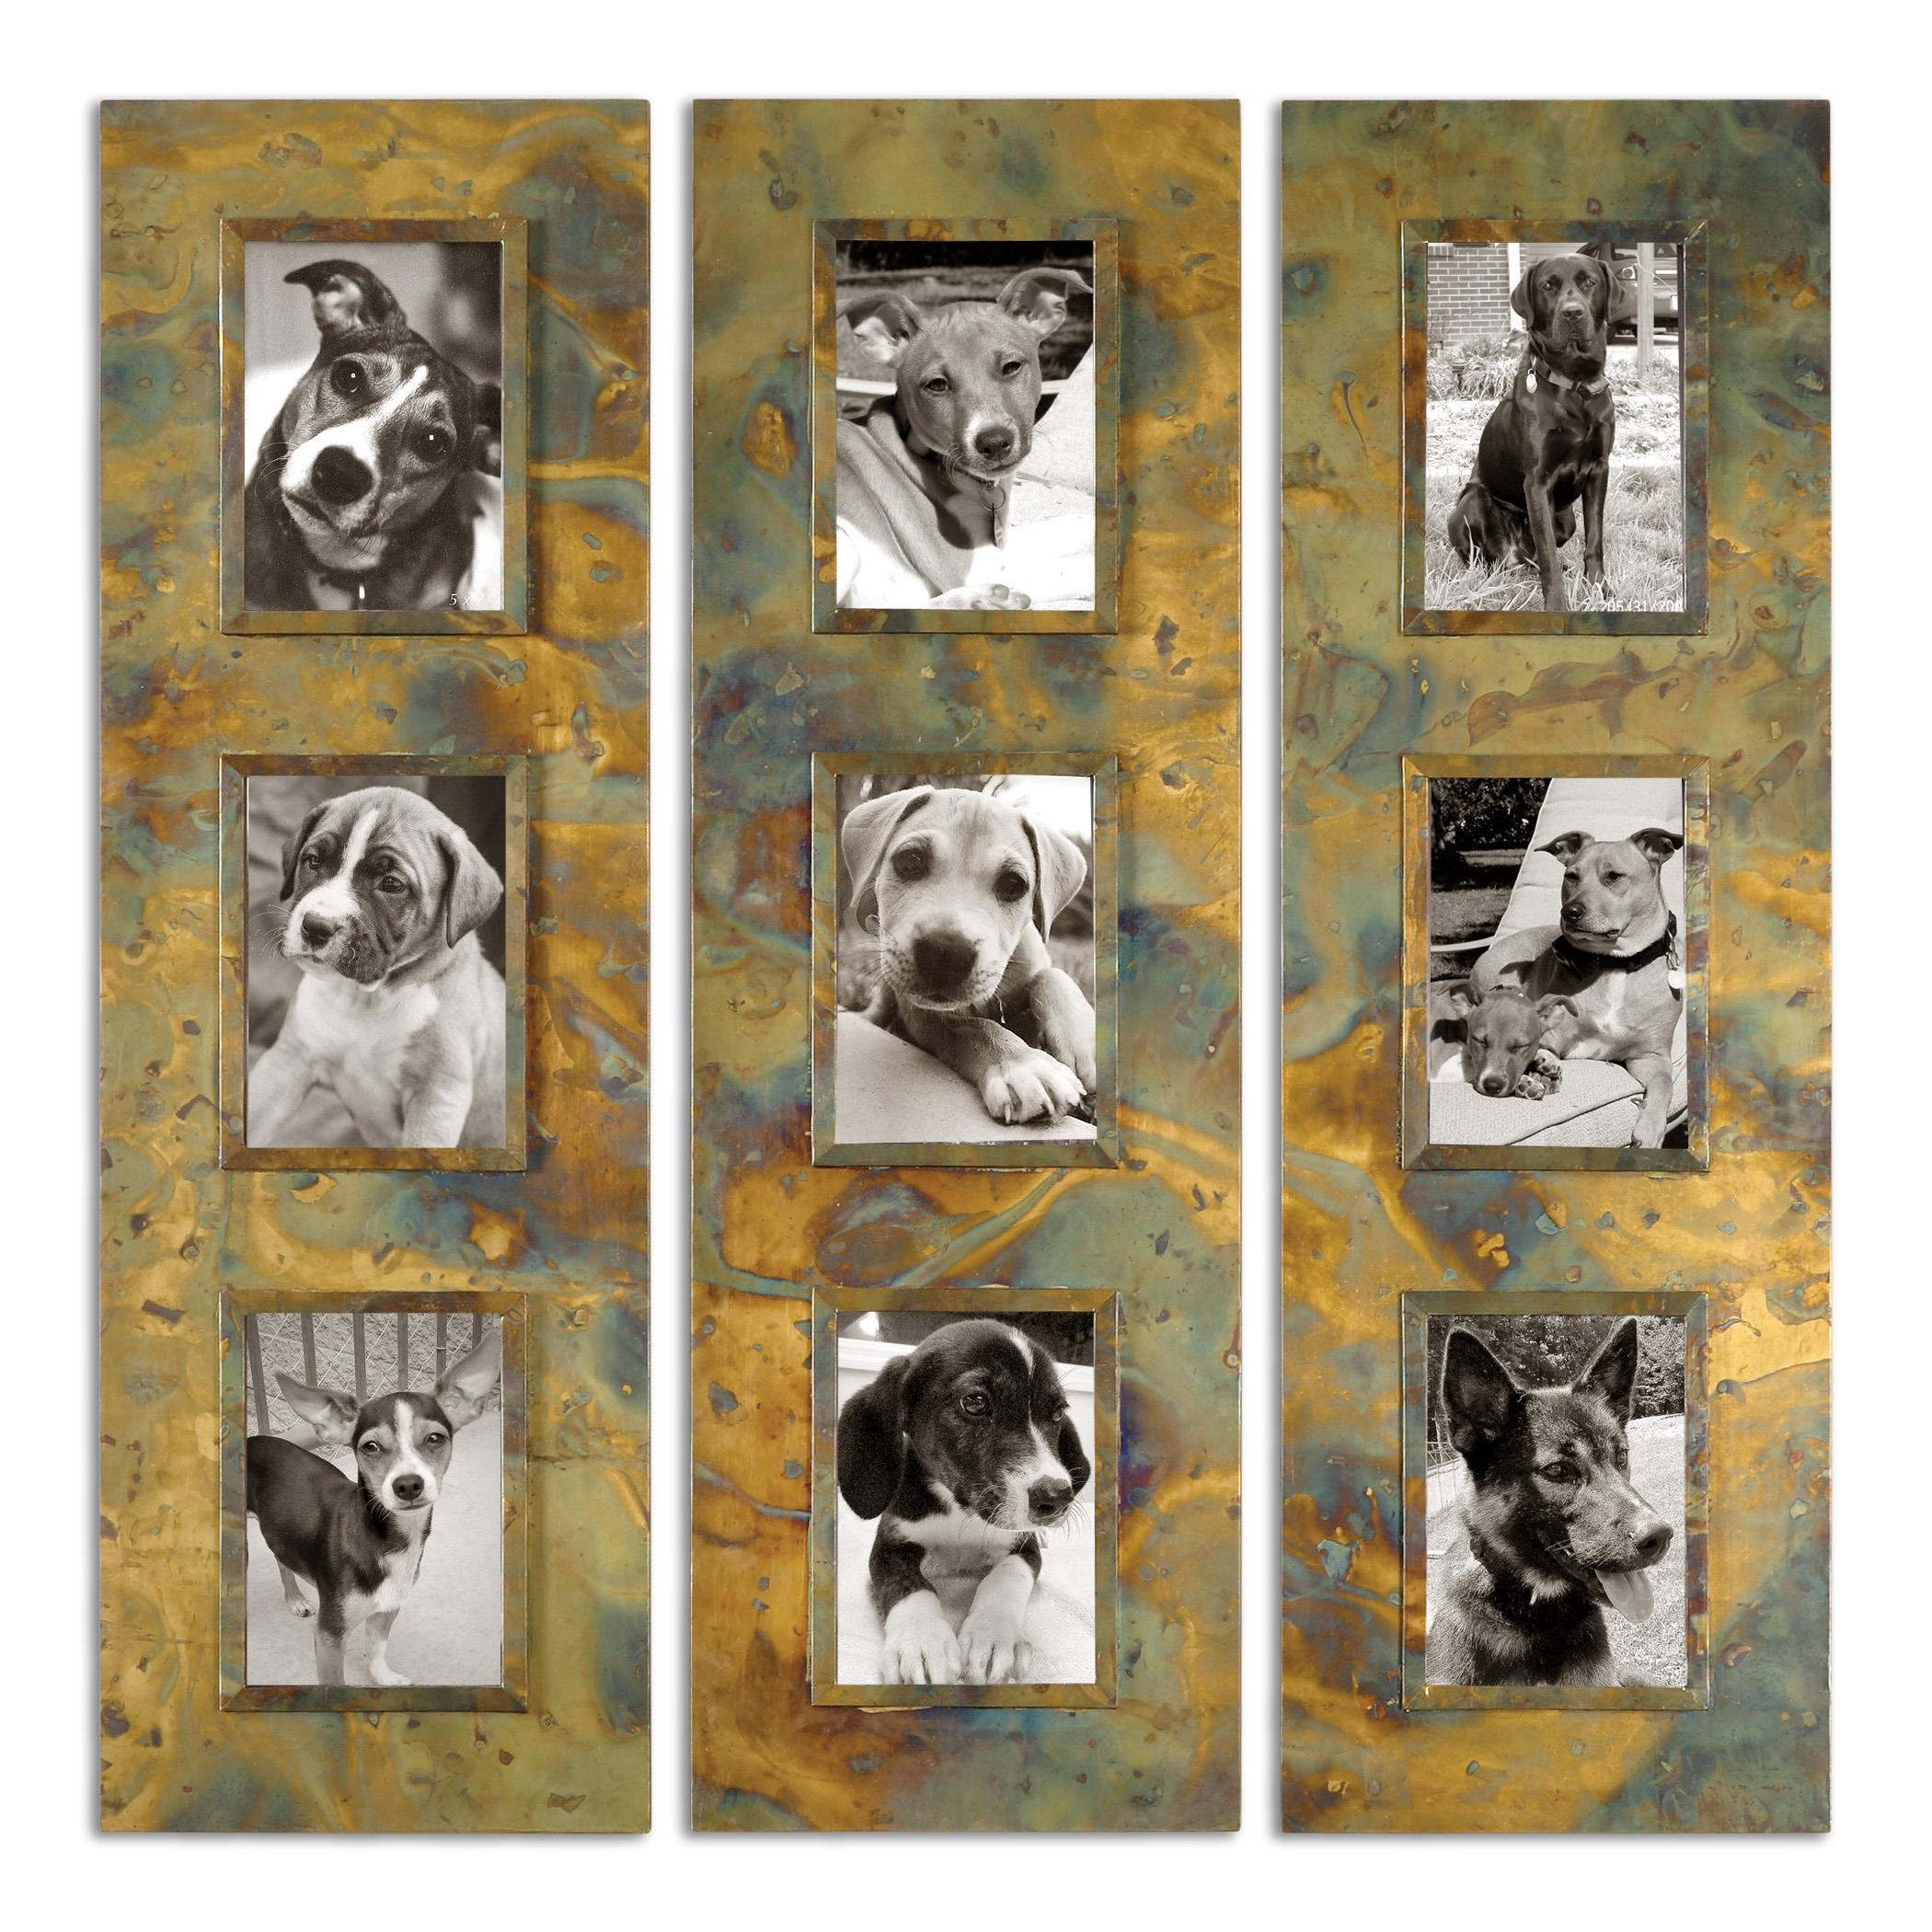 Uttermost Alternative Wall Decor Ambrosia Photo Collage, S/3 - Item Number: 07072